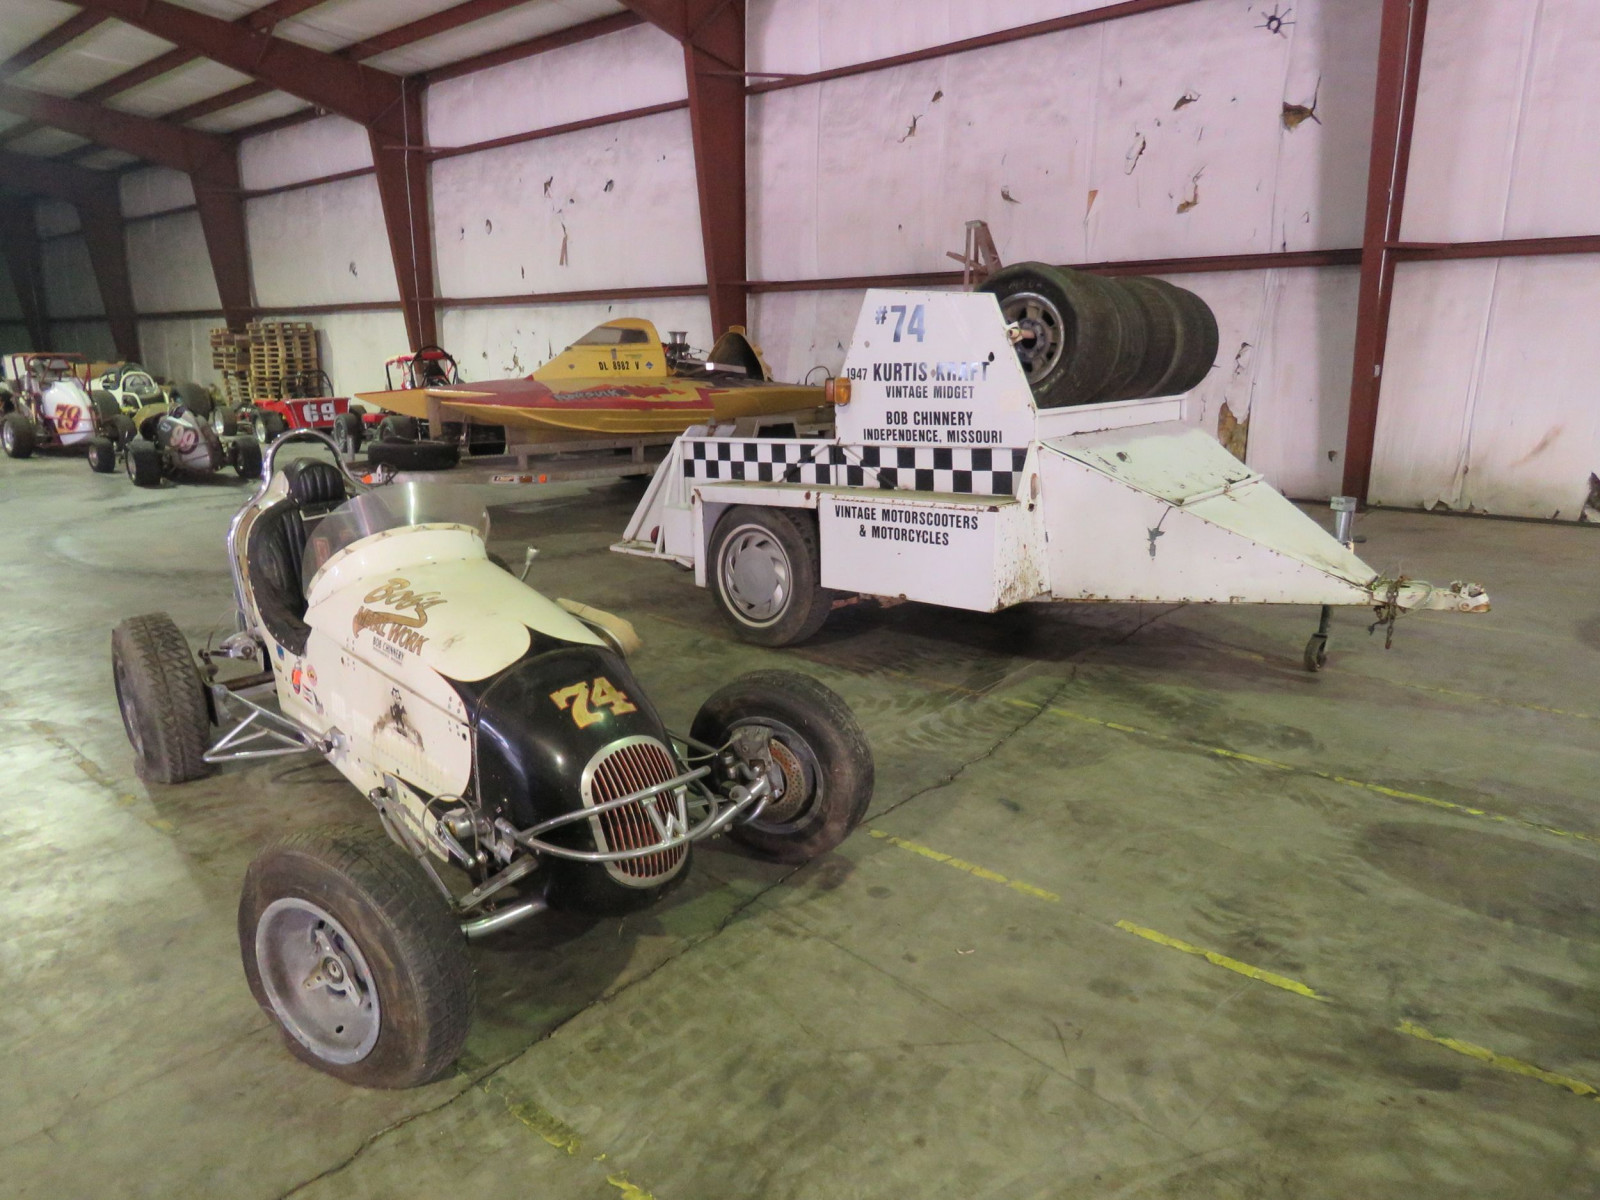 Rare 1947 Kurtis Kraft-Chimnery Midget Racecar and Trailer - Image 1